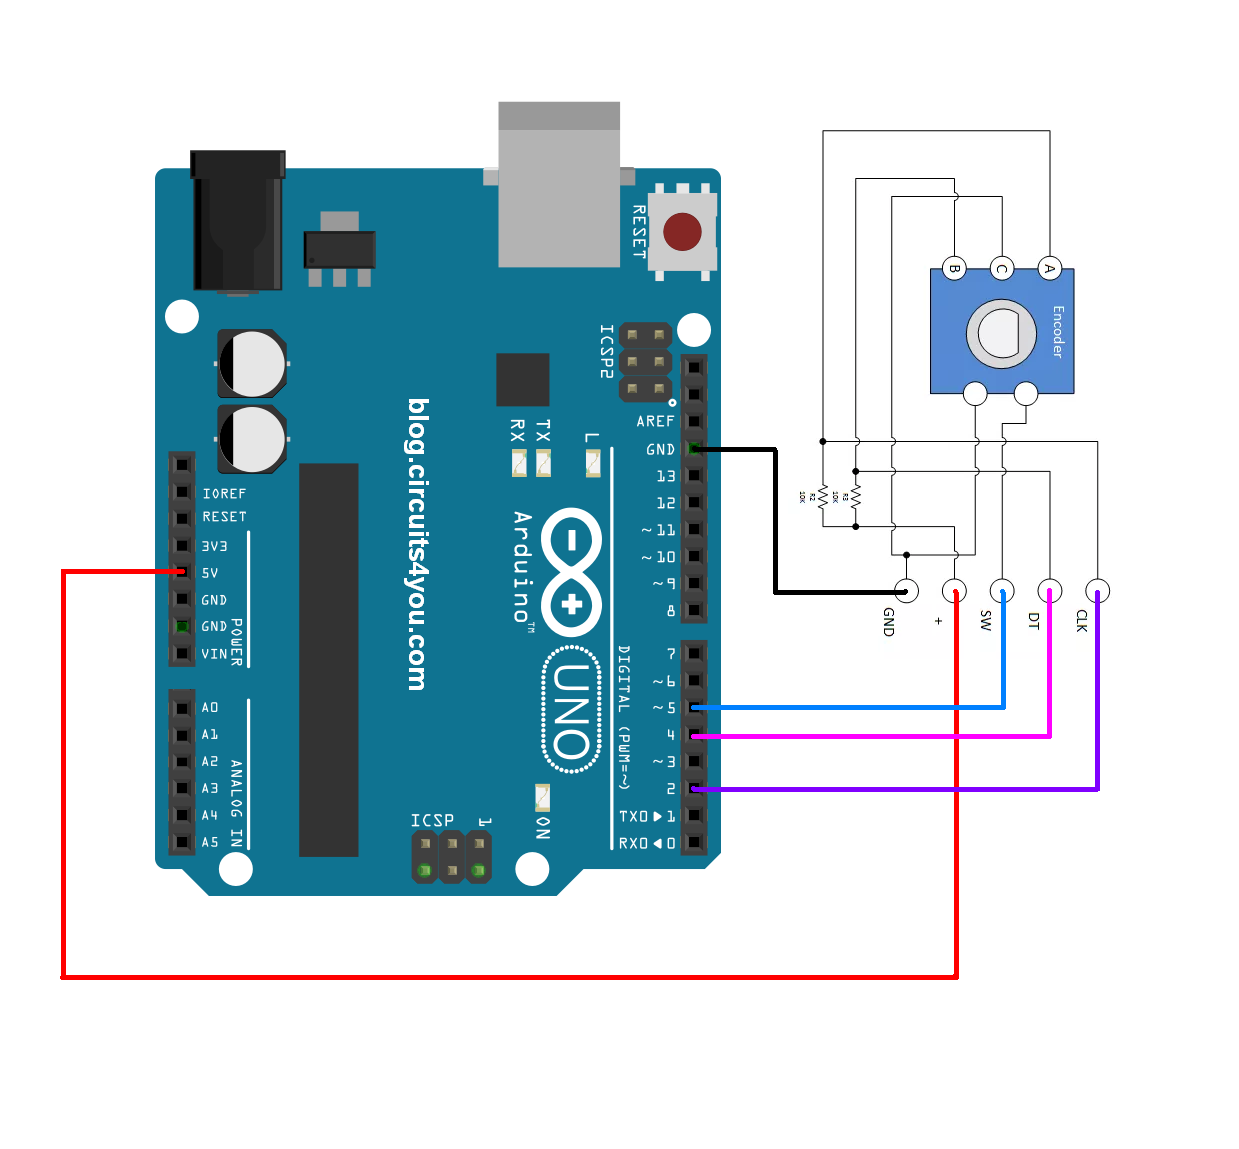 Pump Wiring Diagram Control Simple Guide About Fire Arduino Rotary Encoder Sump Controller